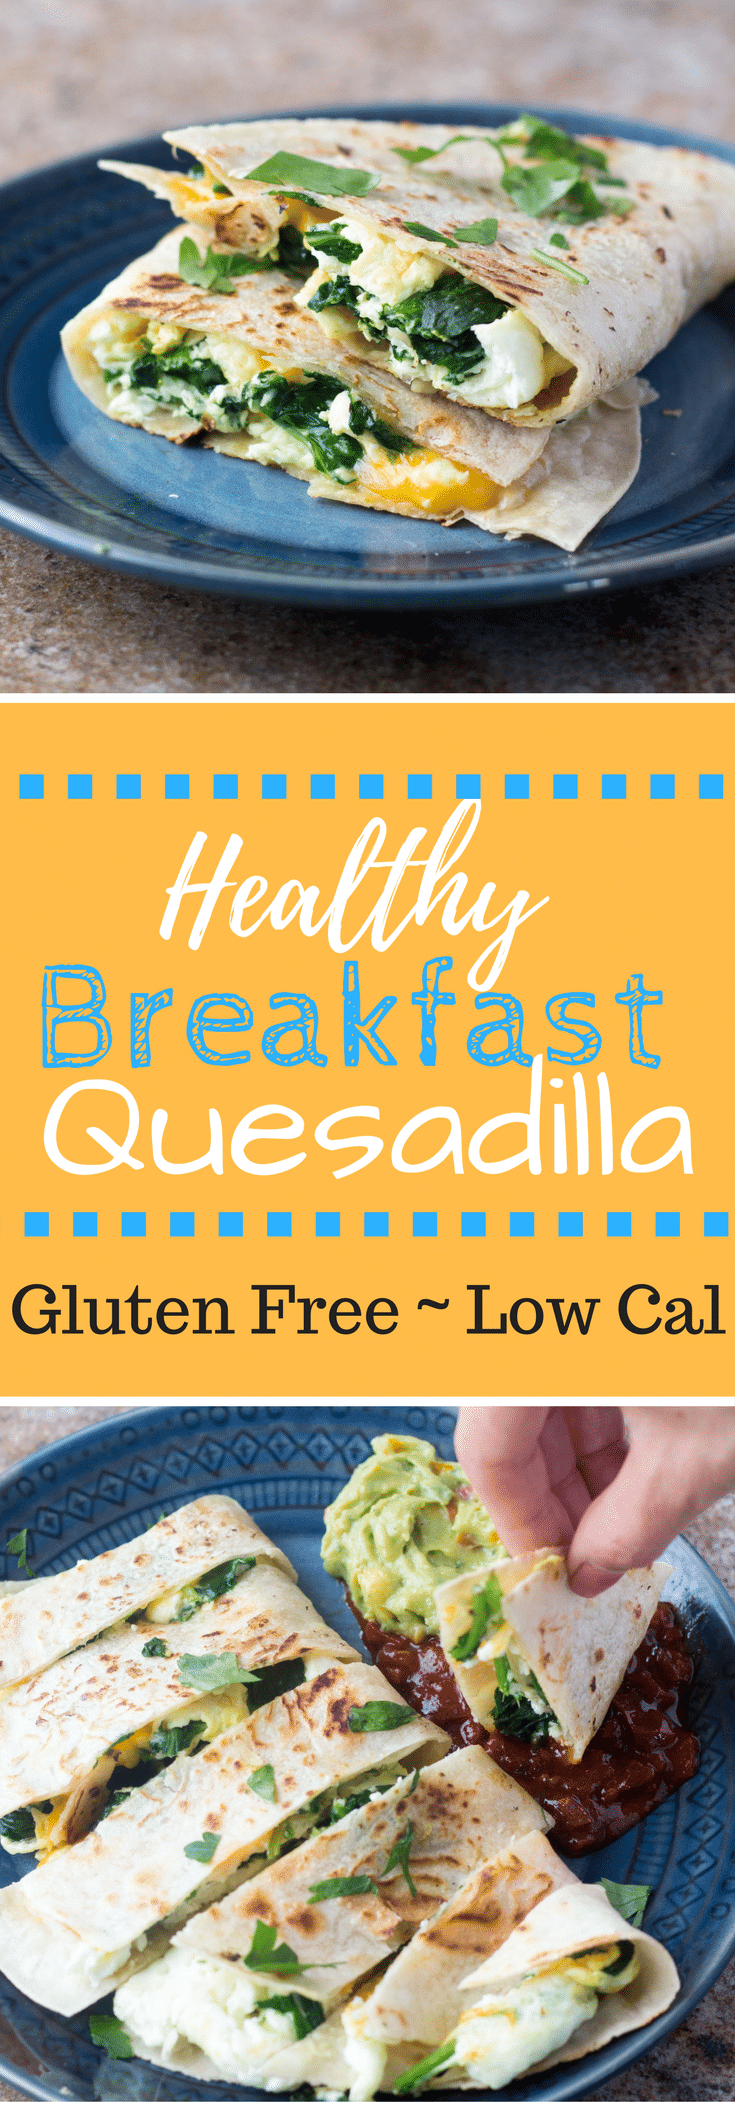 This Healthy Breakfast Quesadilla is filled with spinach, cheddar, and egg whites for a tasty filling healthy gluten-free breakfast!  #glutenfree #lowcalorie #healthy #hungryhobby #highprotein #healthybreakfast